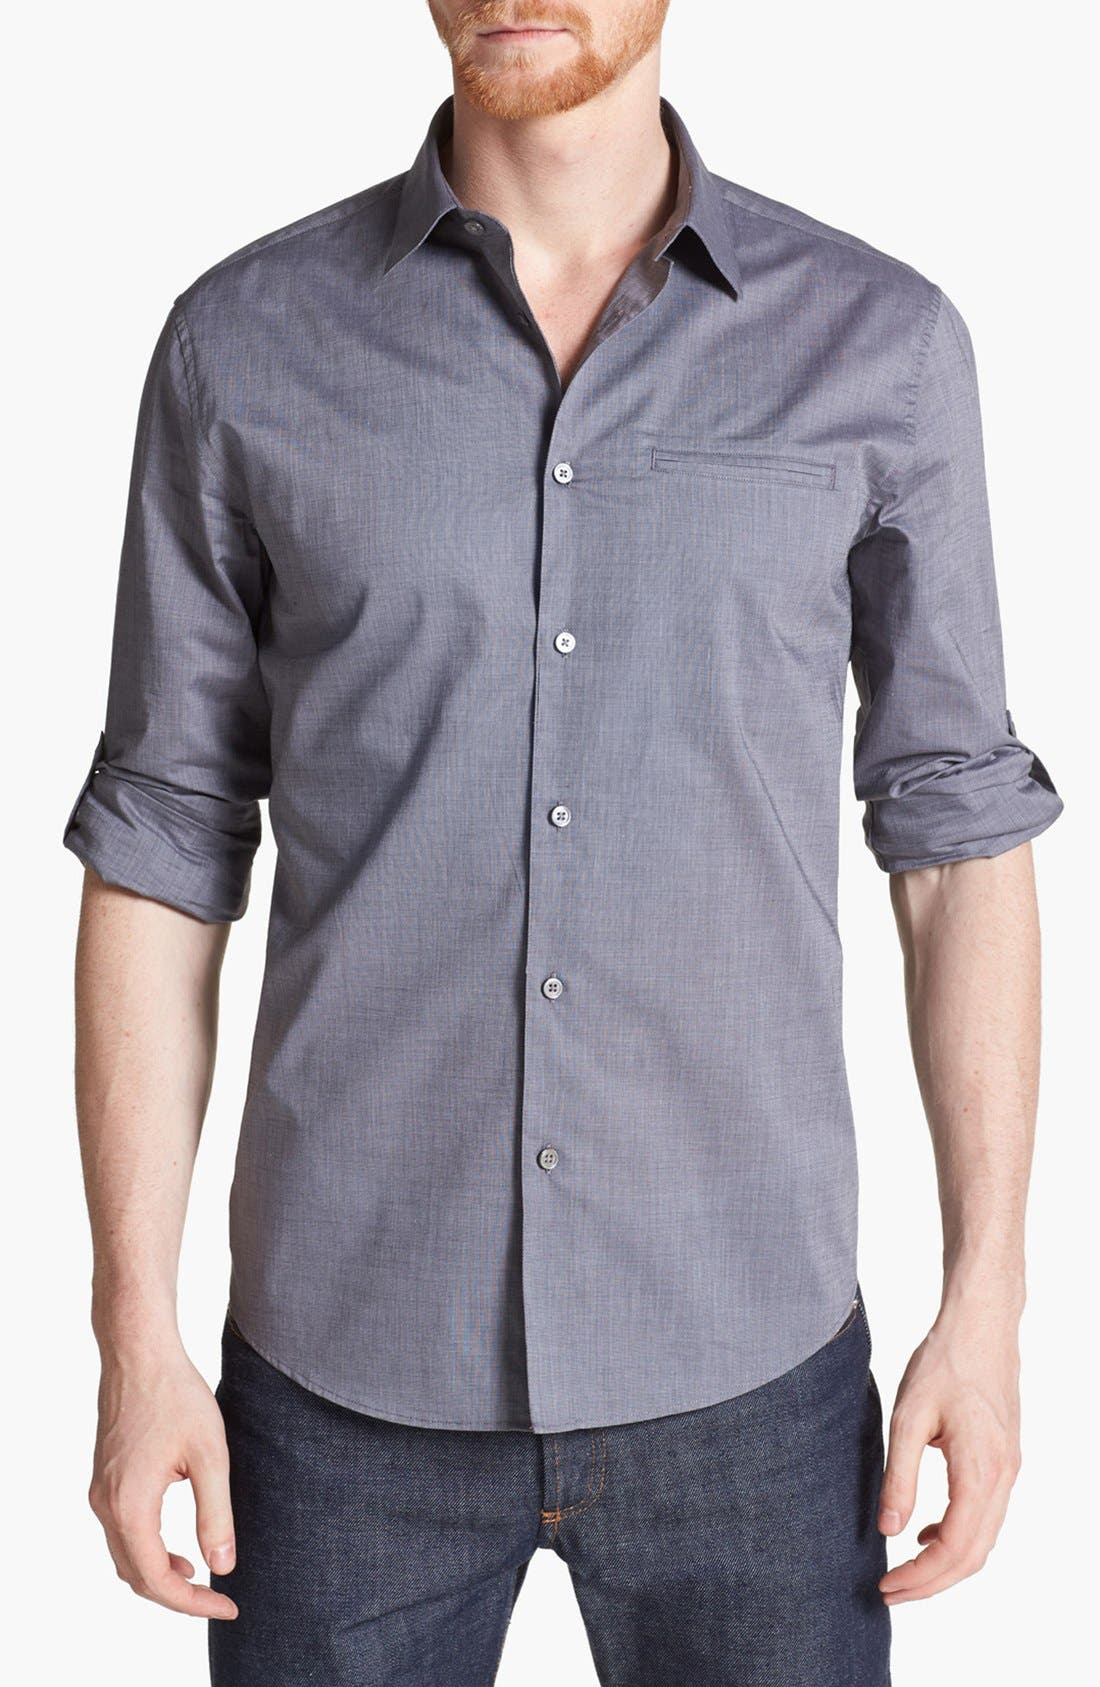 Alternate Image 1 Selected - John Varvatos Collection Slim Fit Cotton Woven Shirt